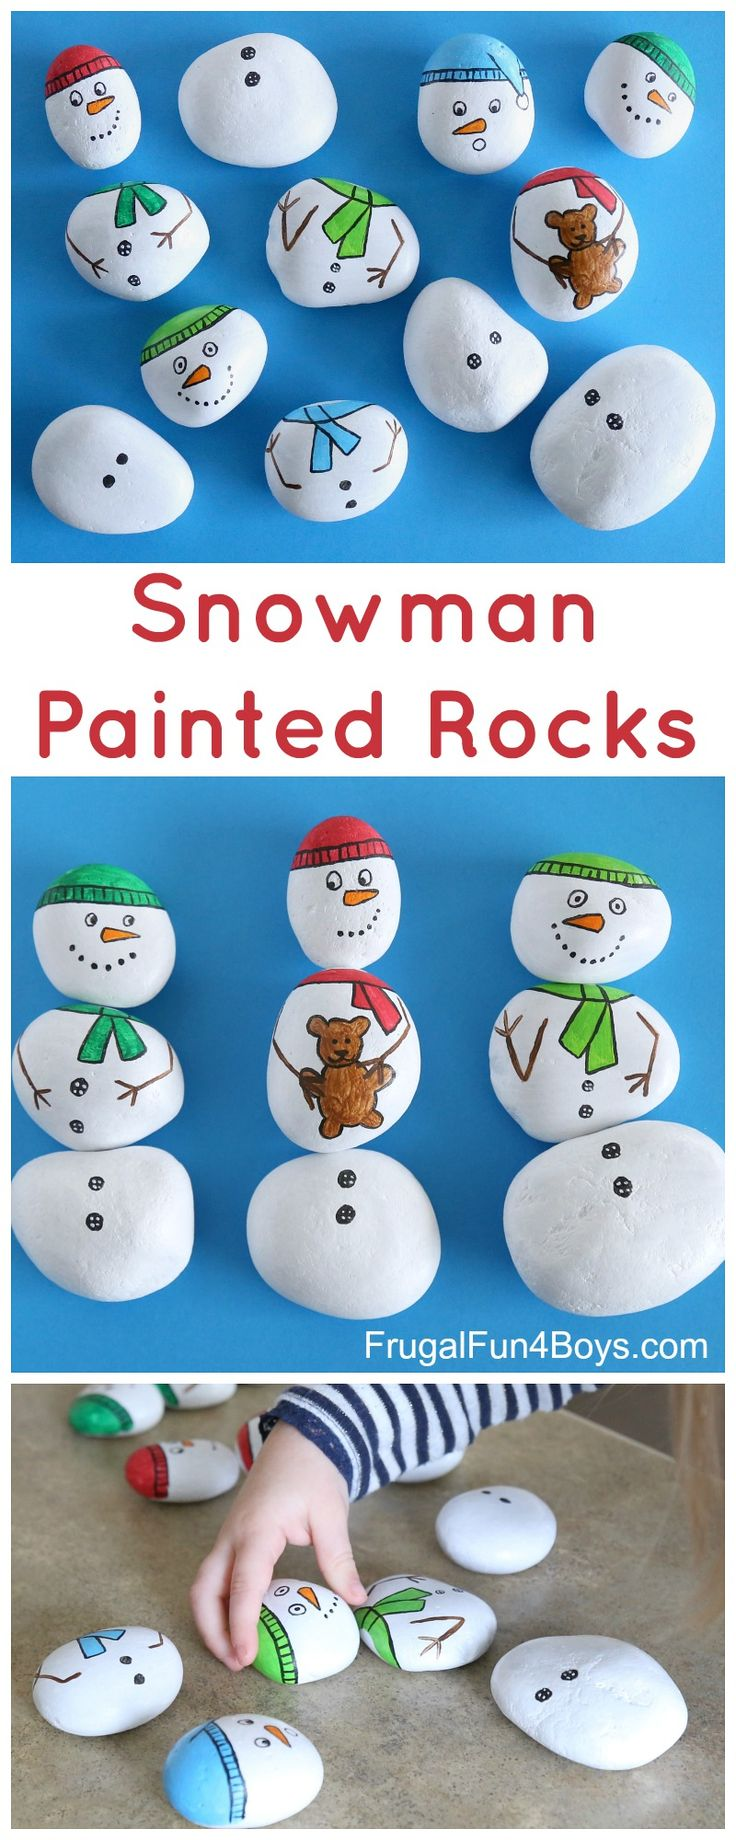 Snowman Painted Rocks - Build snowmen with mix and match painted rocks. #winter #kidsactivities #paintedrocks